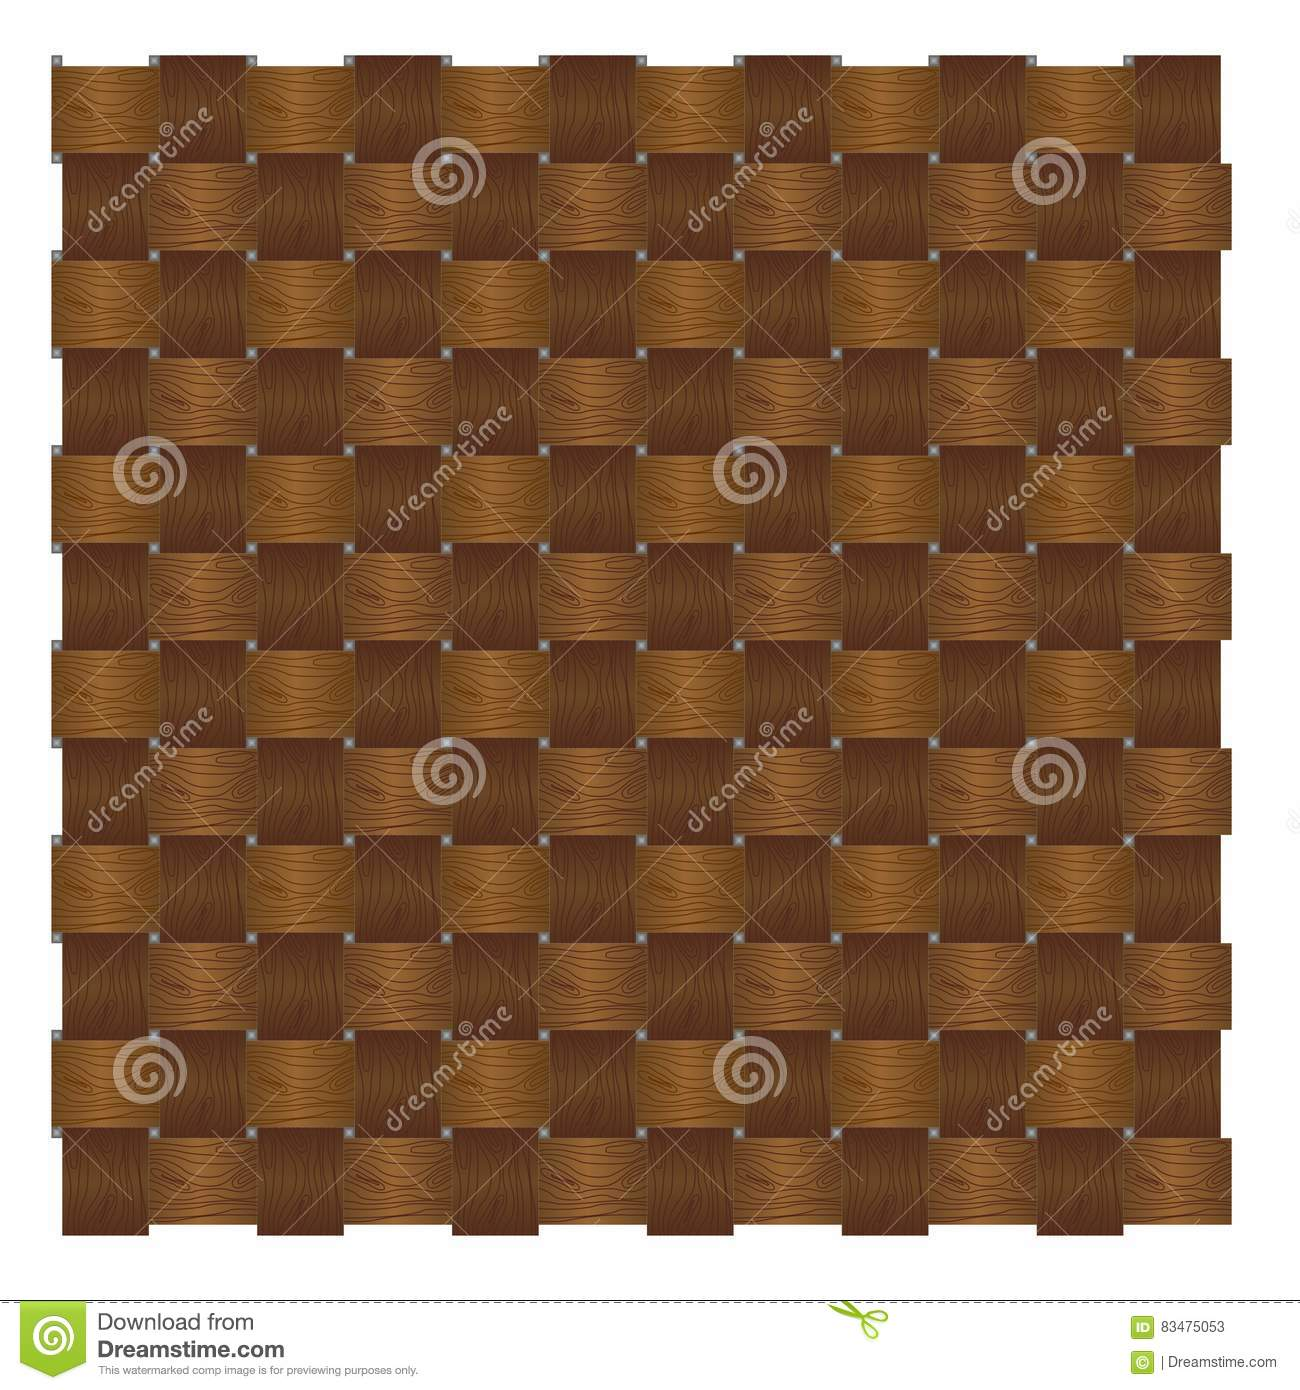 Wood pattern knitting stock vector. Illustration of cicle - 83475053